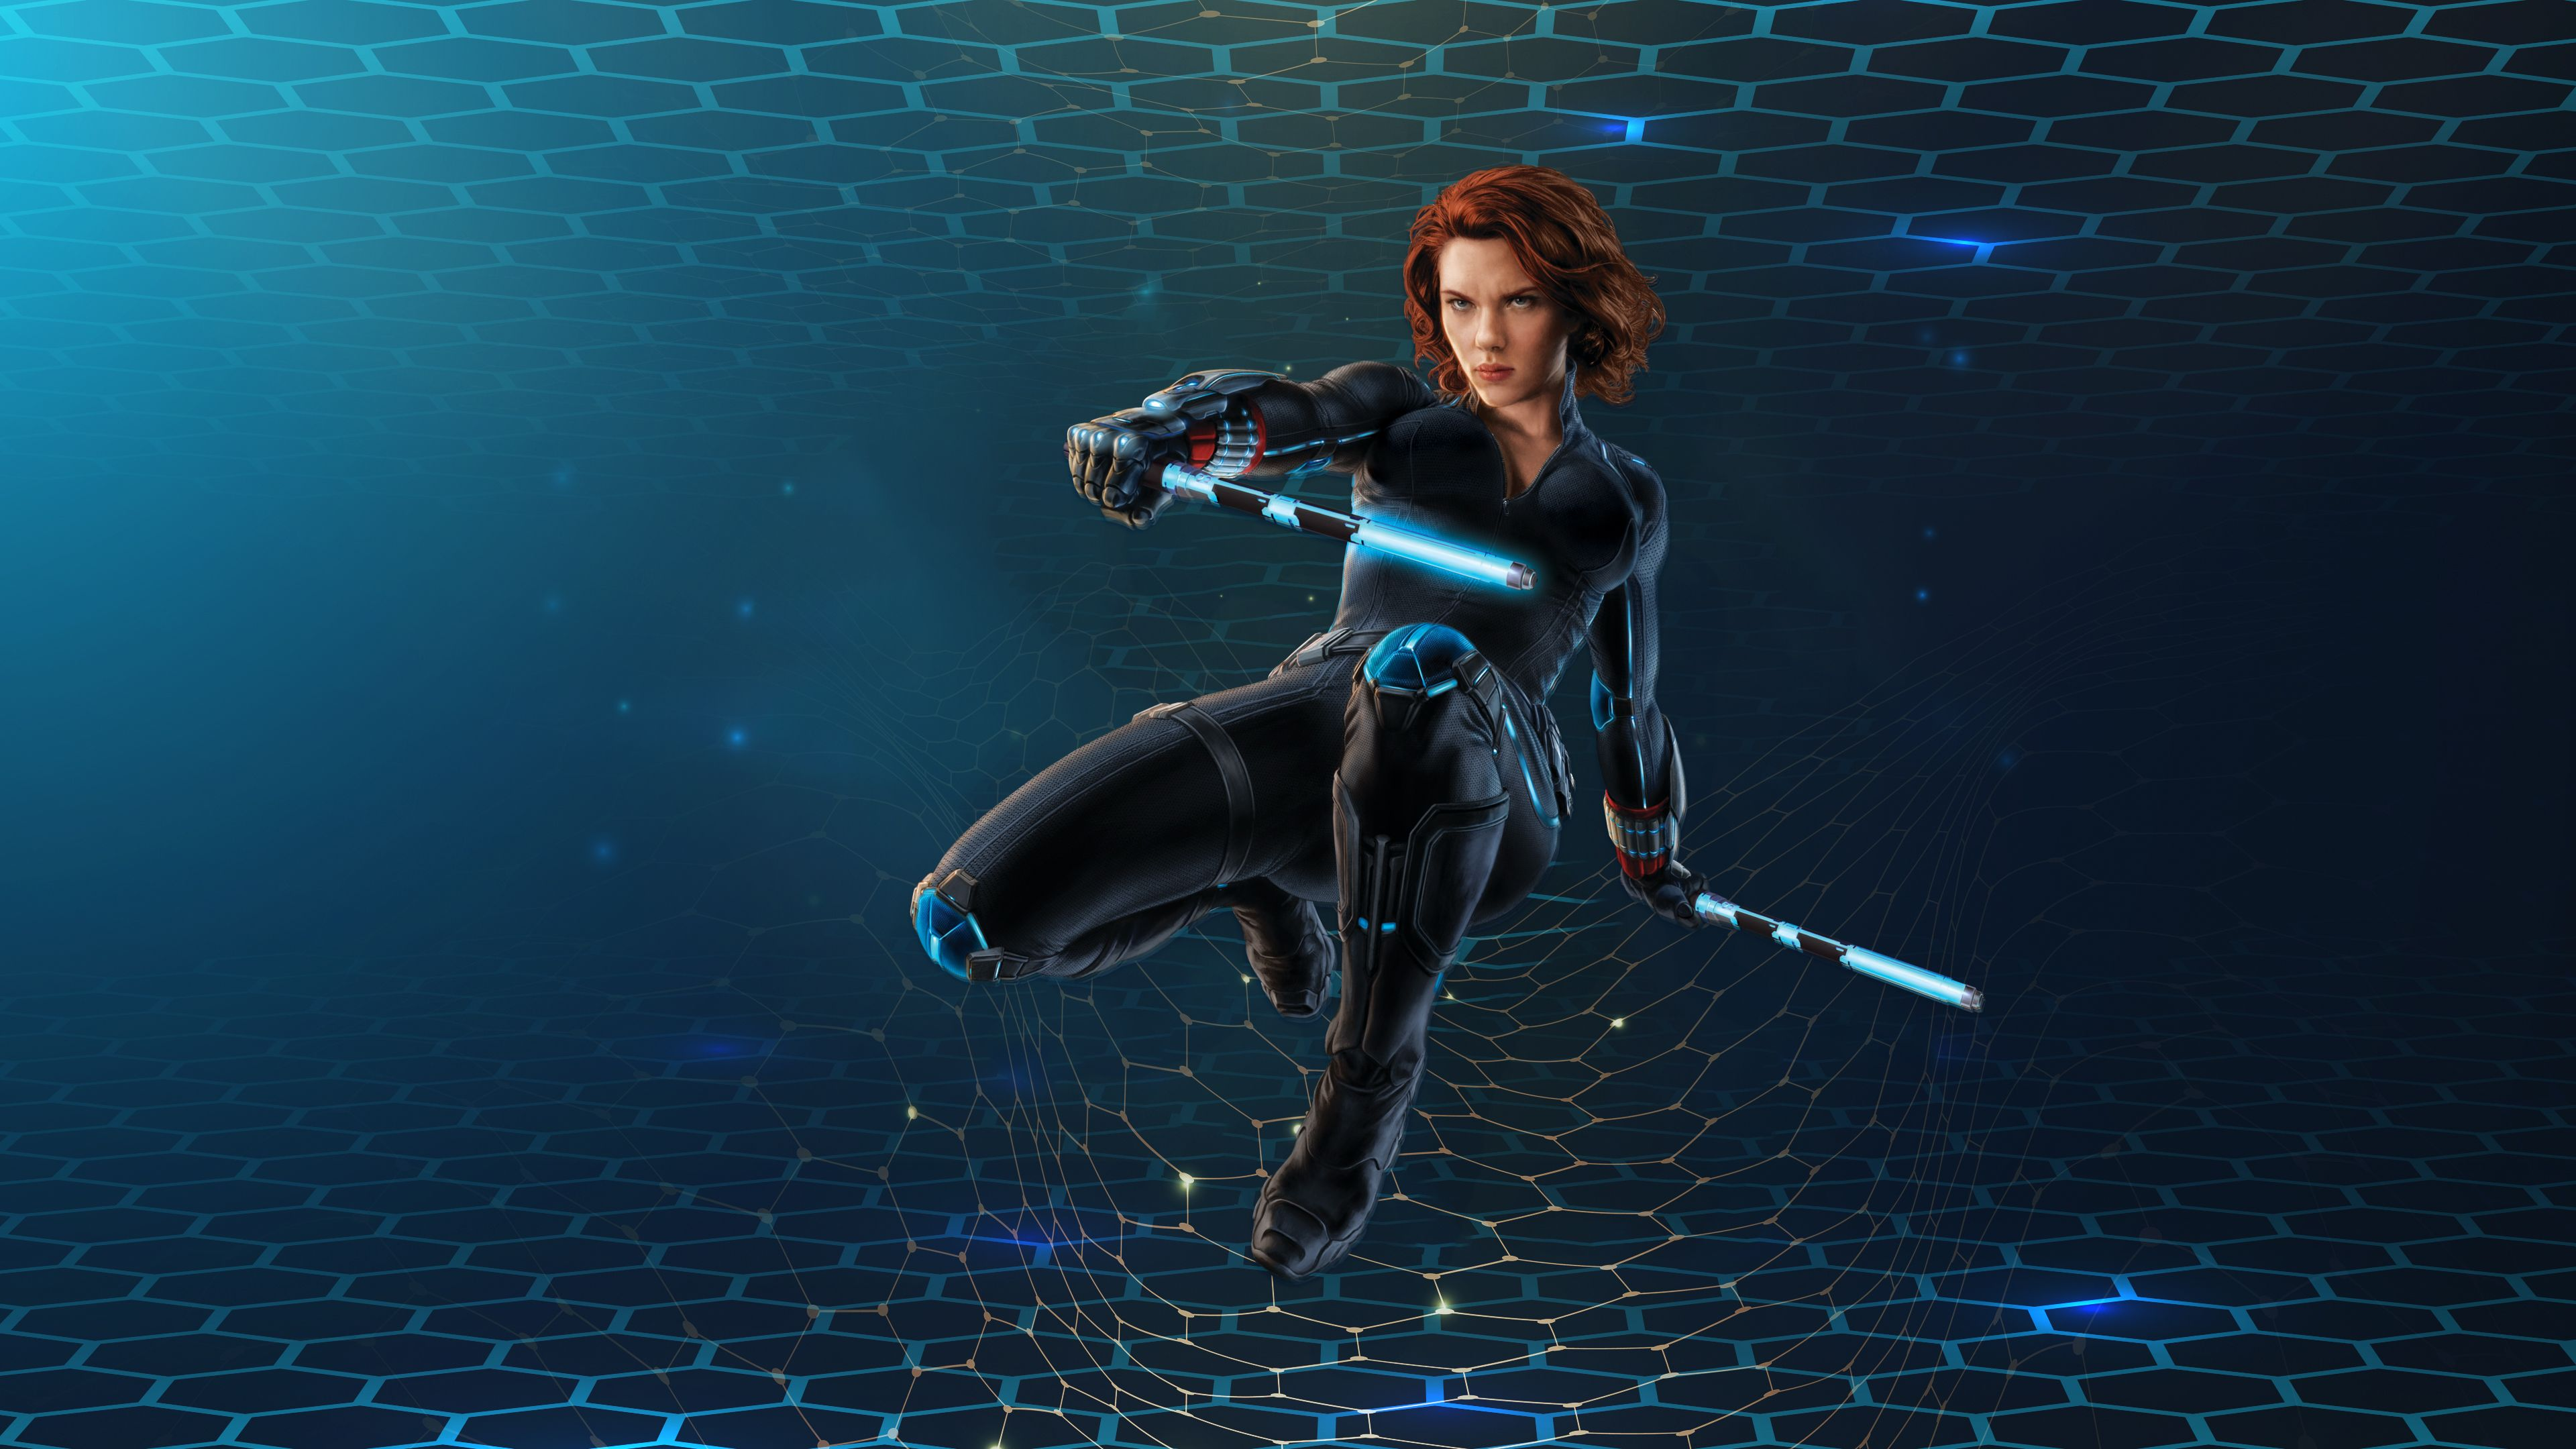 Black Widow 3d 4k Superheroes Wallpapers Scarlett Johansson Wallpapers Hd Wallpapers Black Widow W Black Widow Wallpaper Marvel Paintings Black Hd Wallpaper